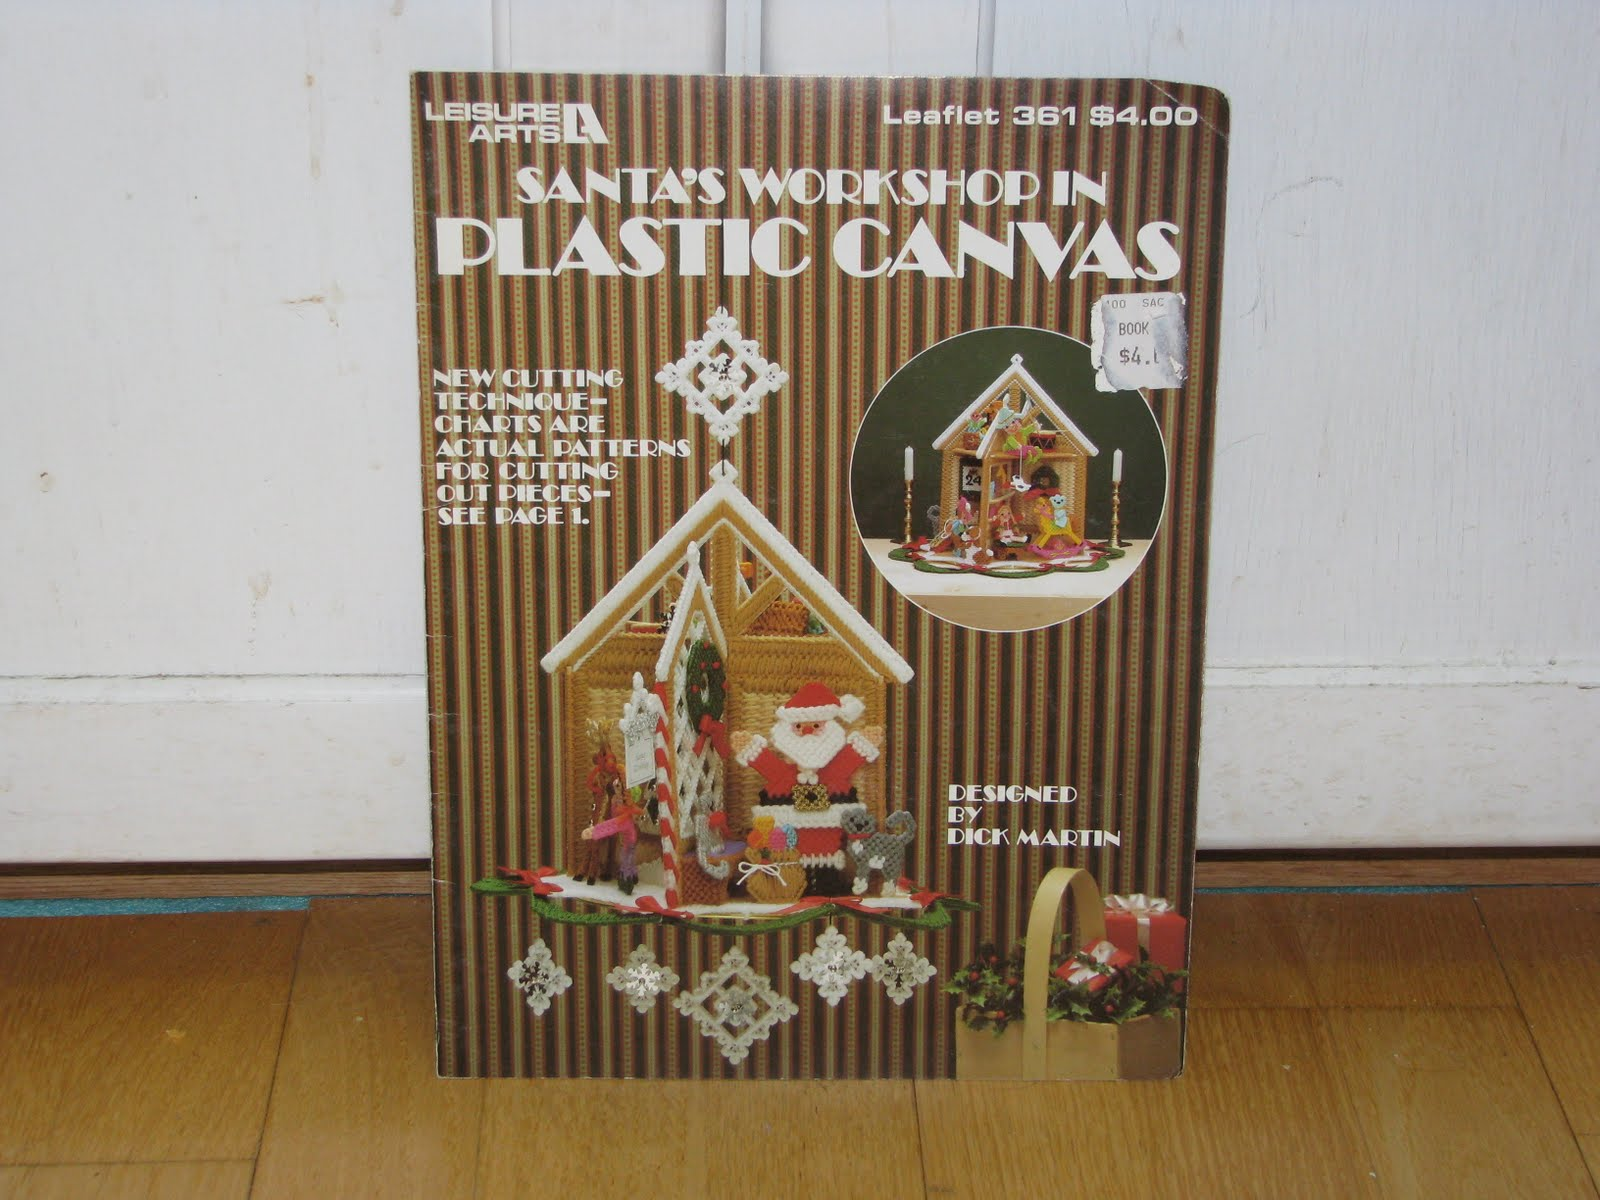 for the plastic canvas